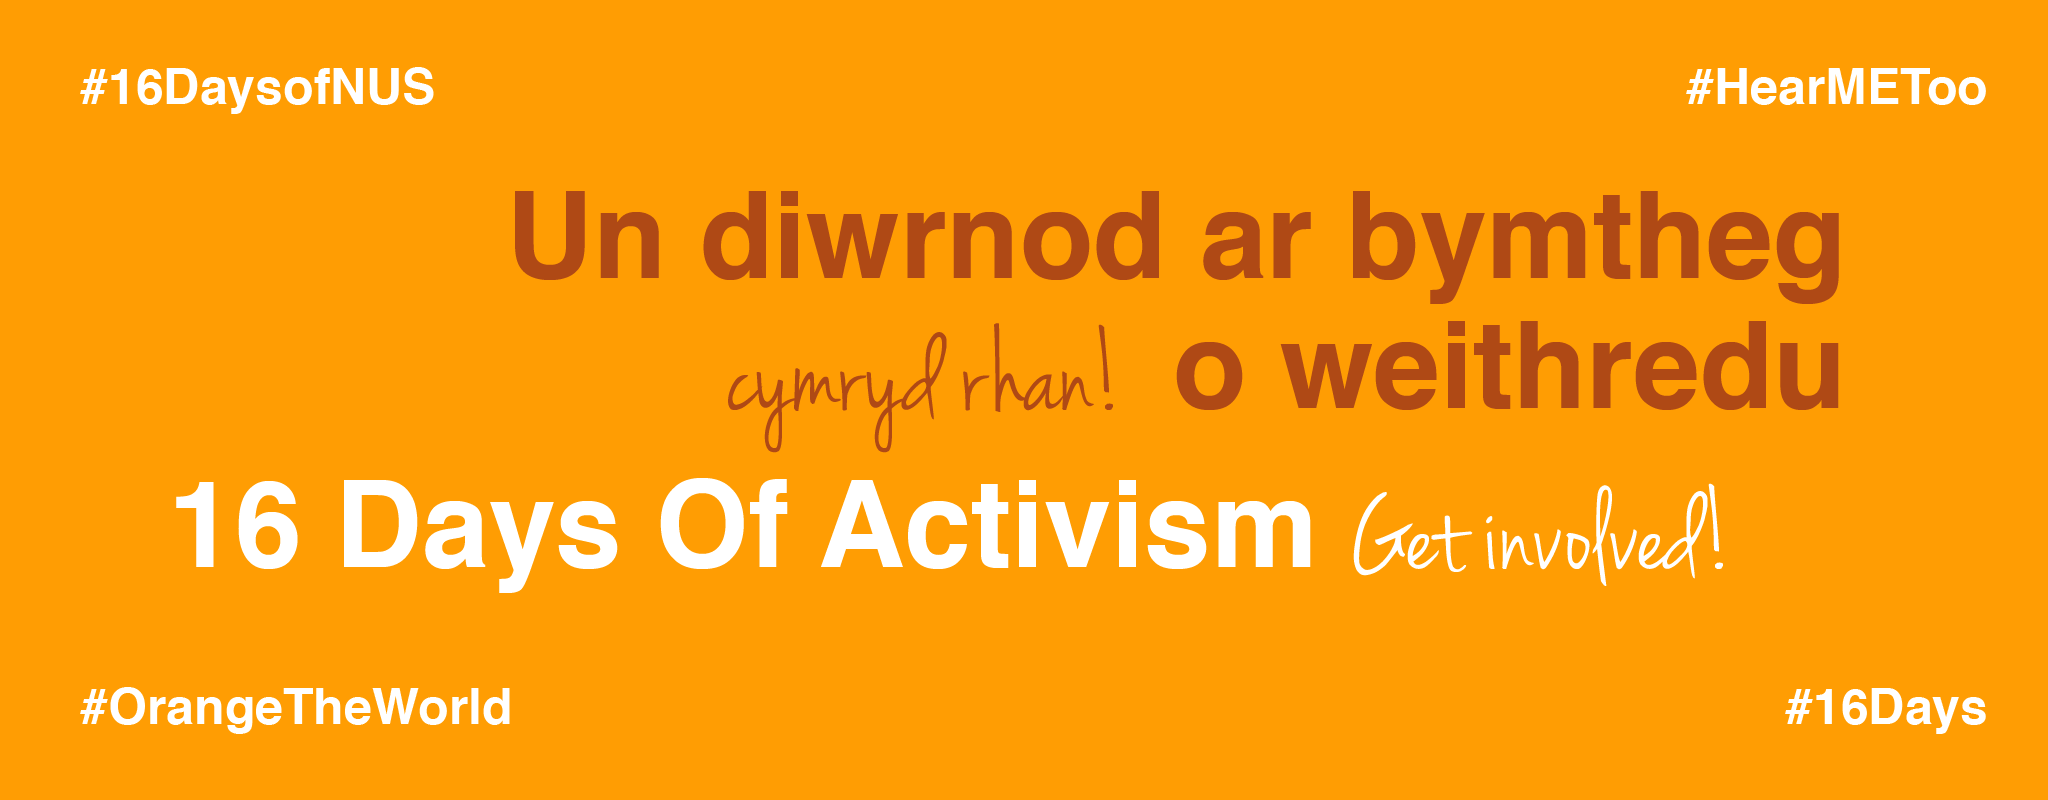 Banner image click to learn about 16 days of activism